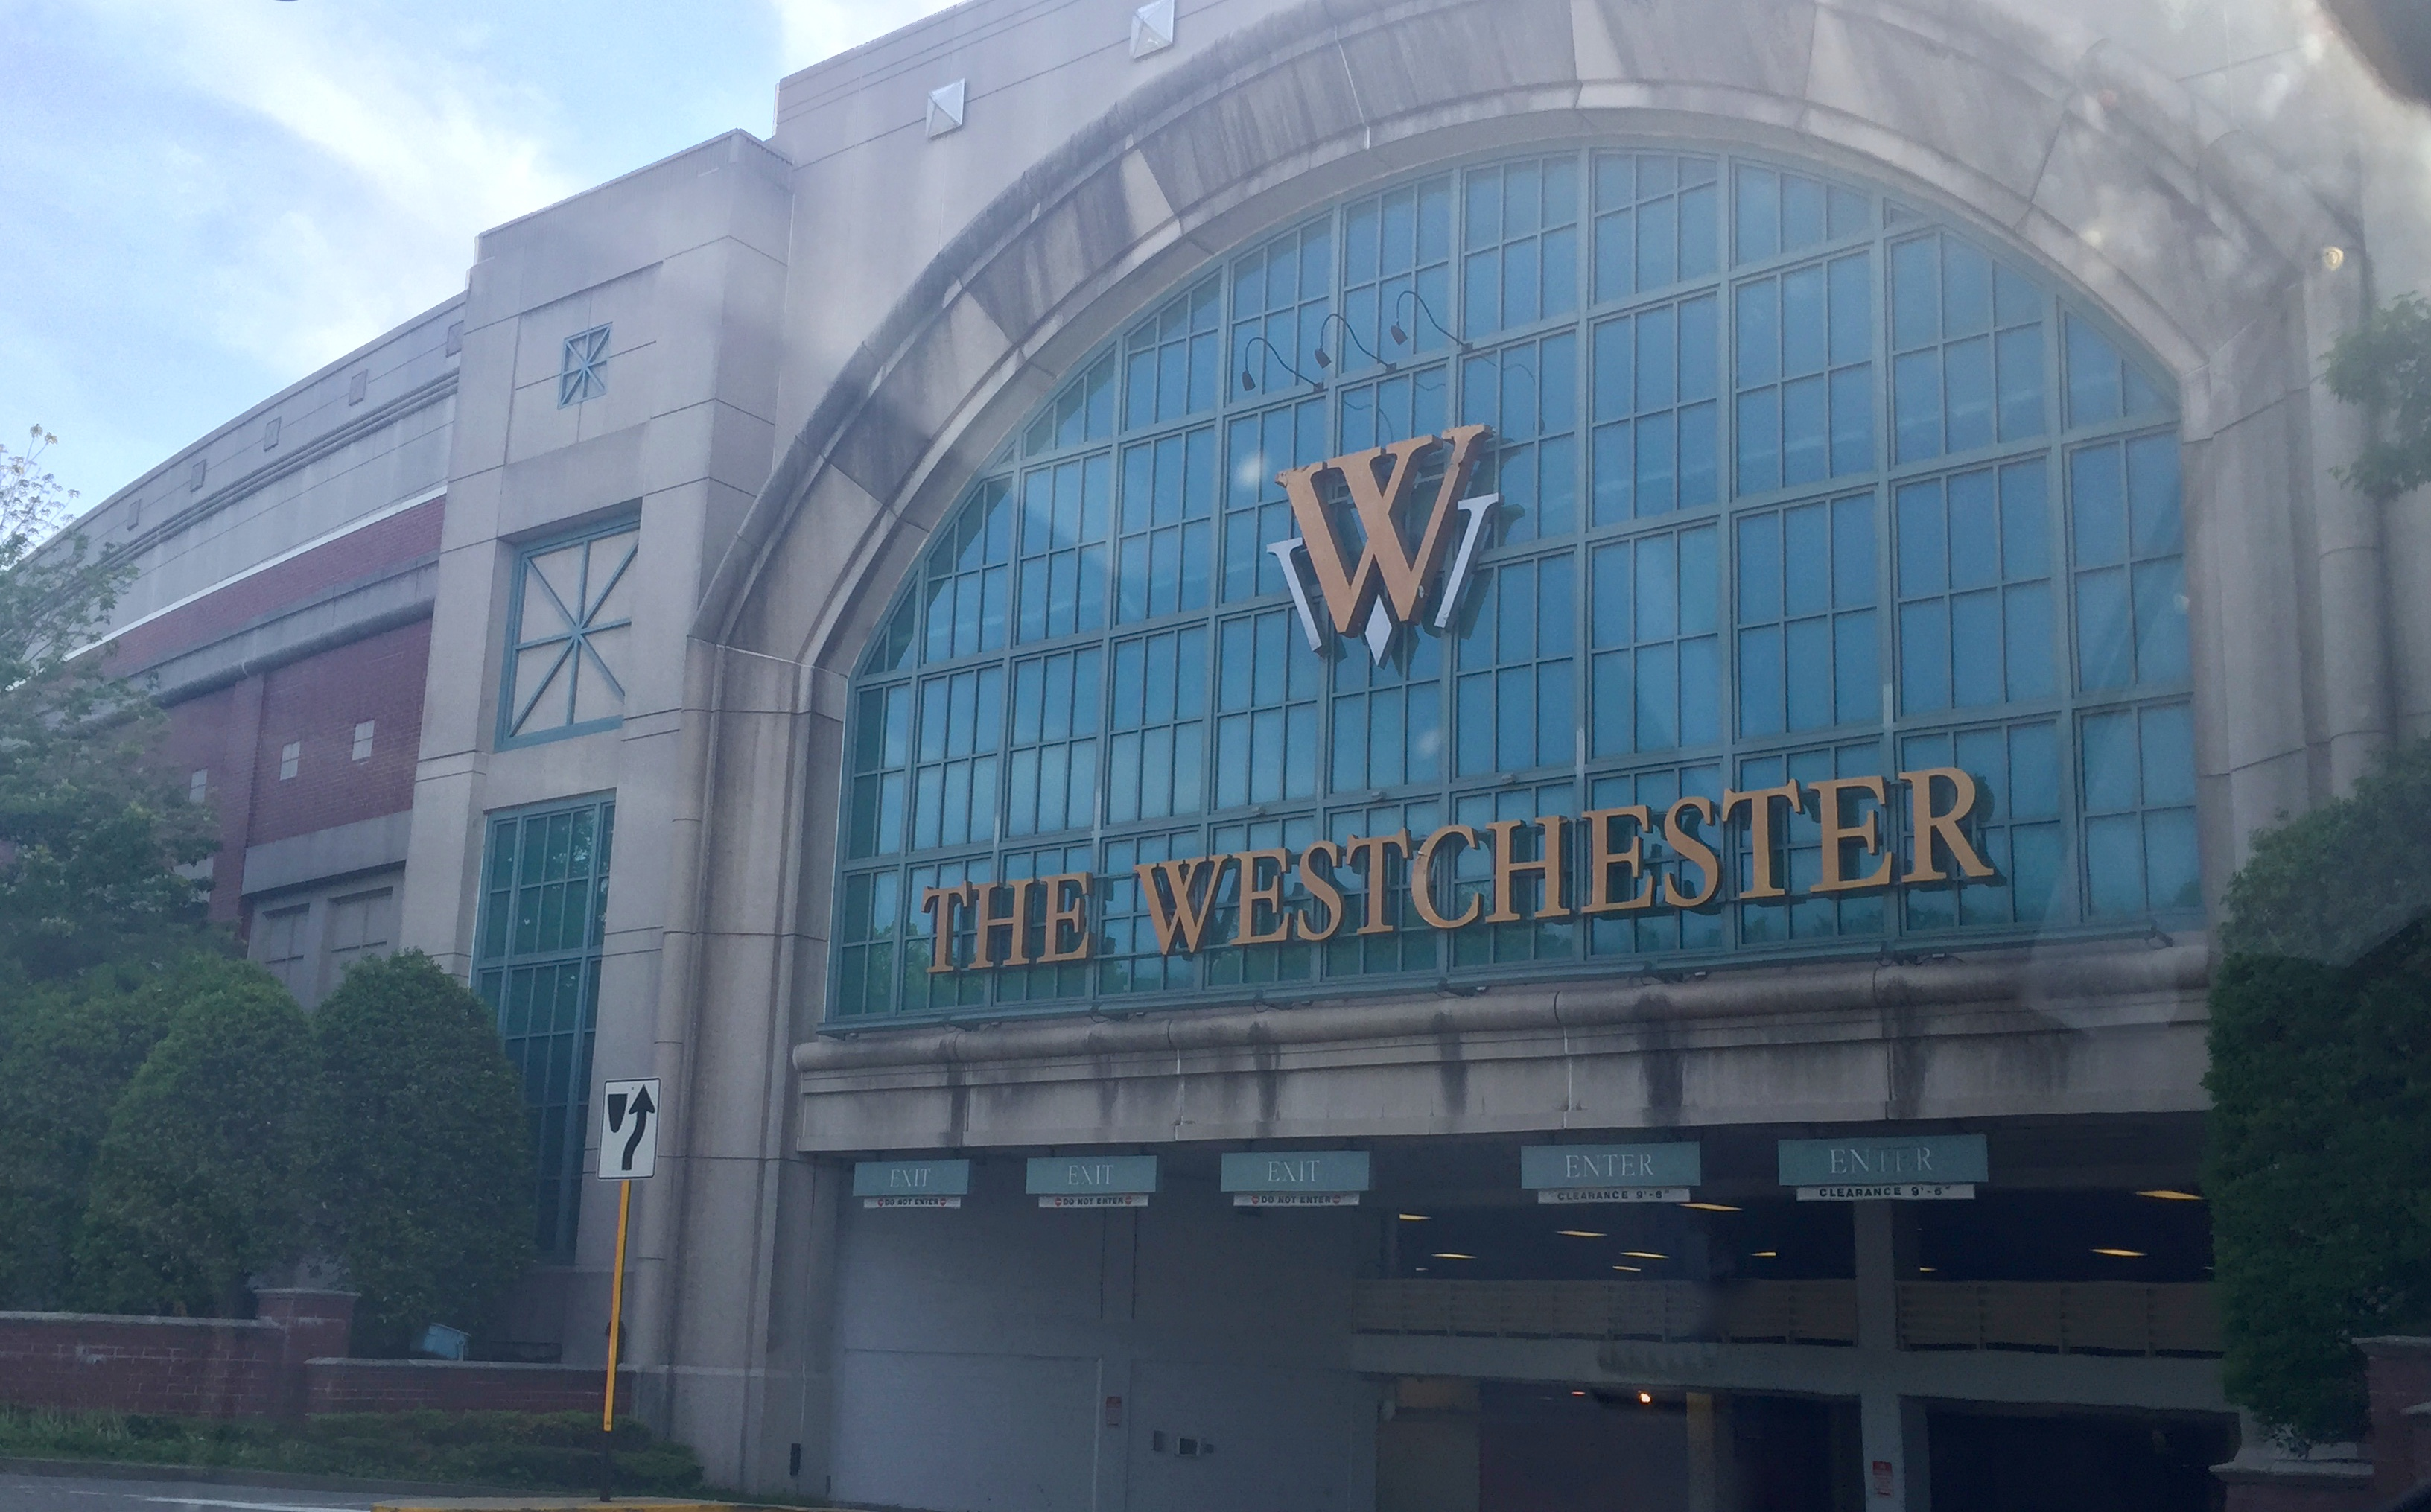 The Westchester Wikipedia